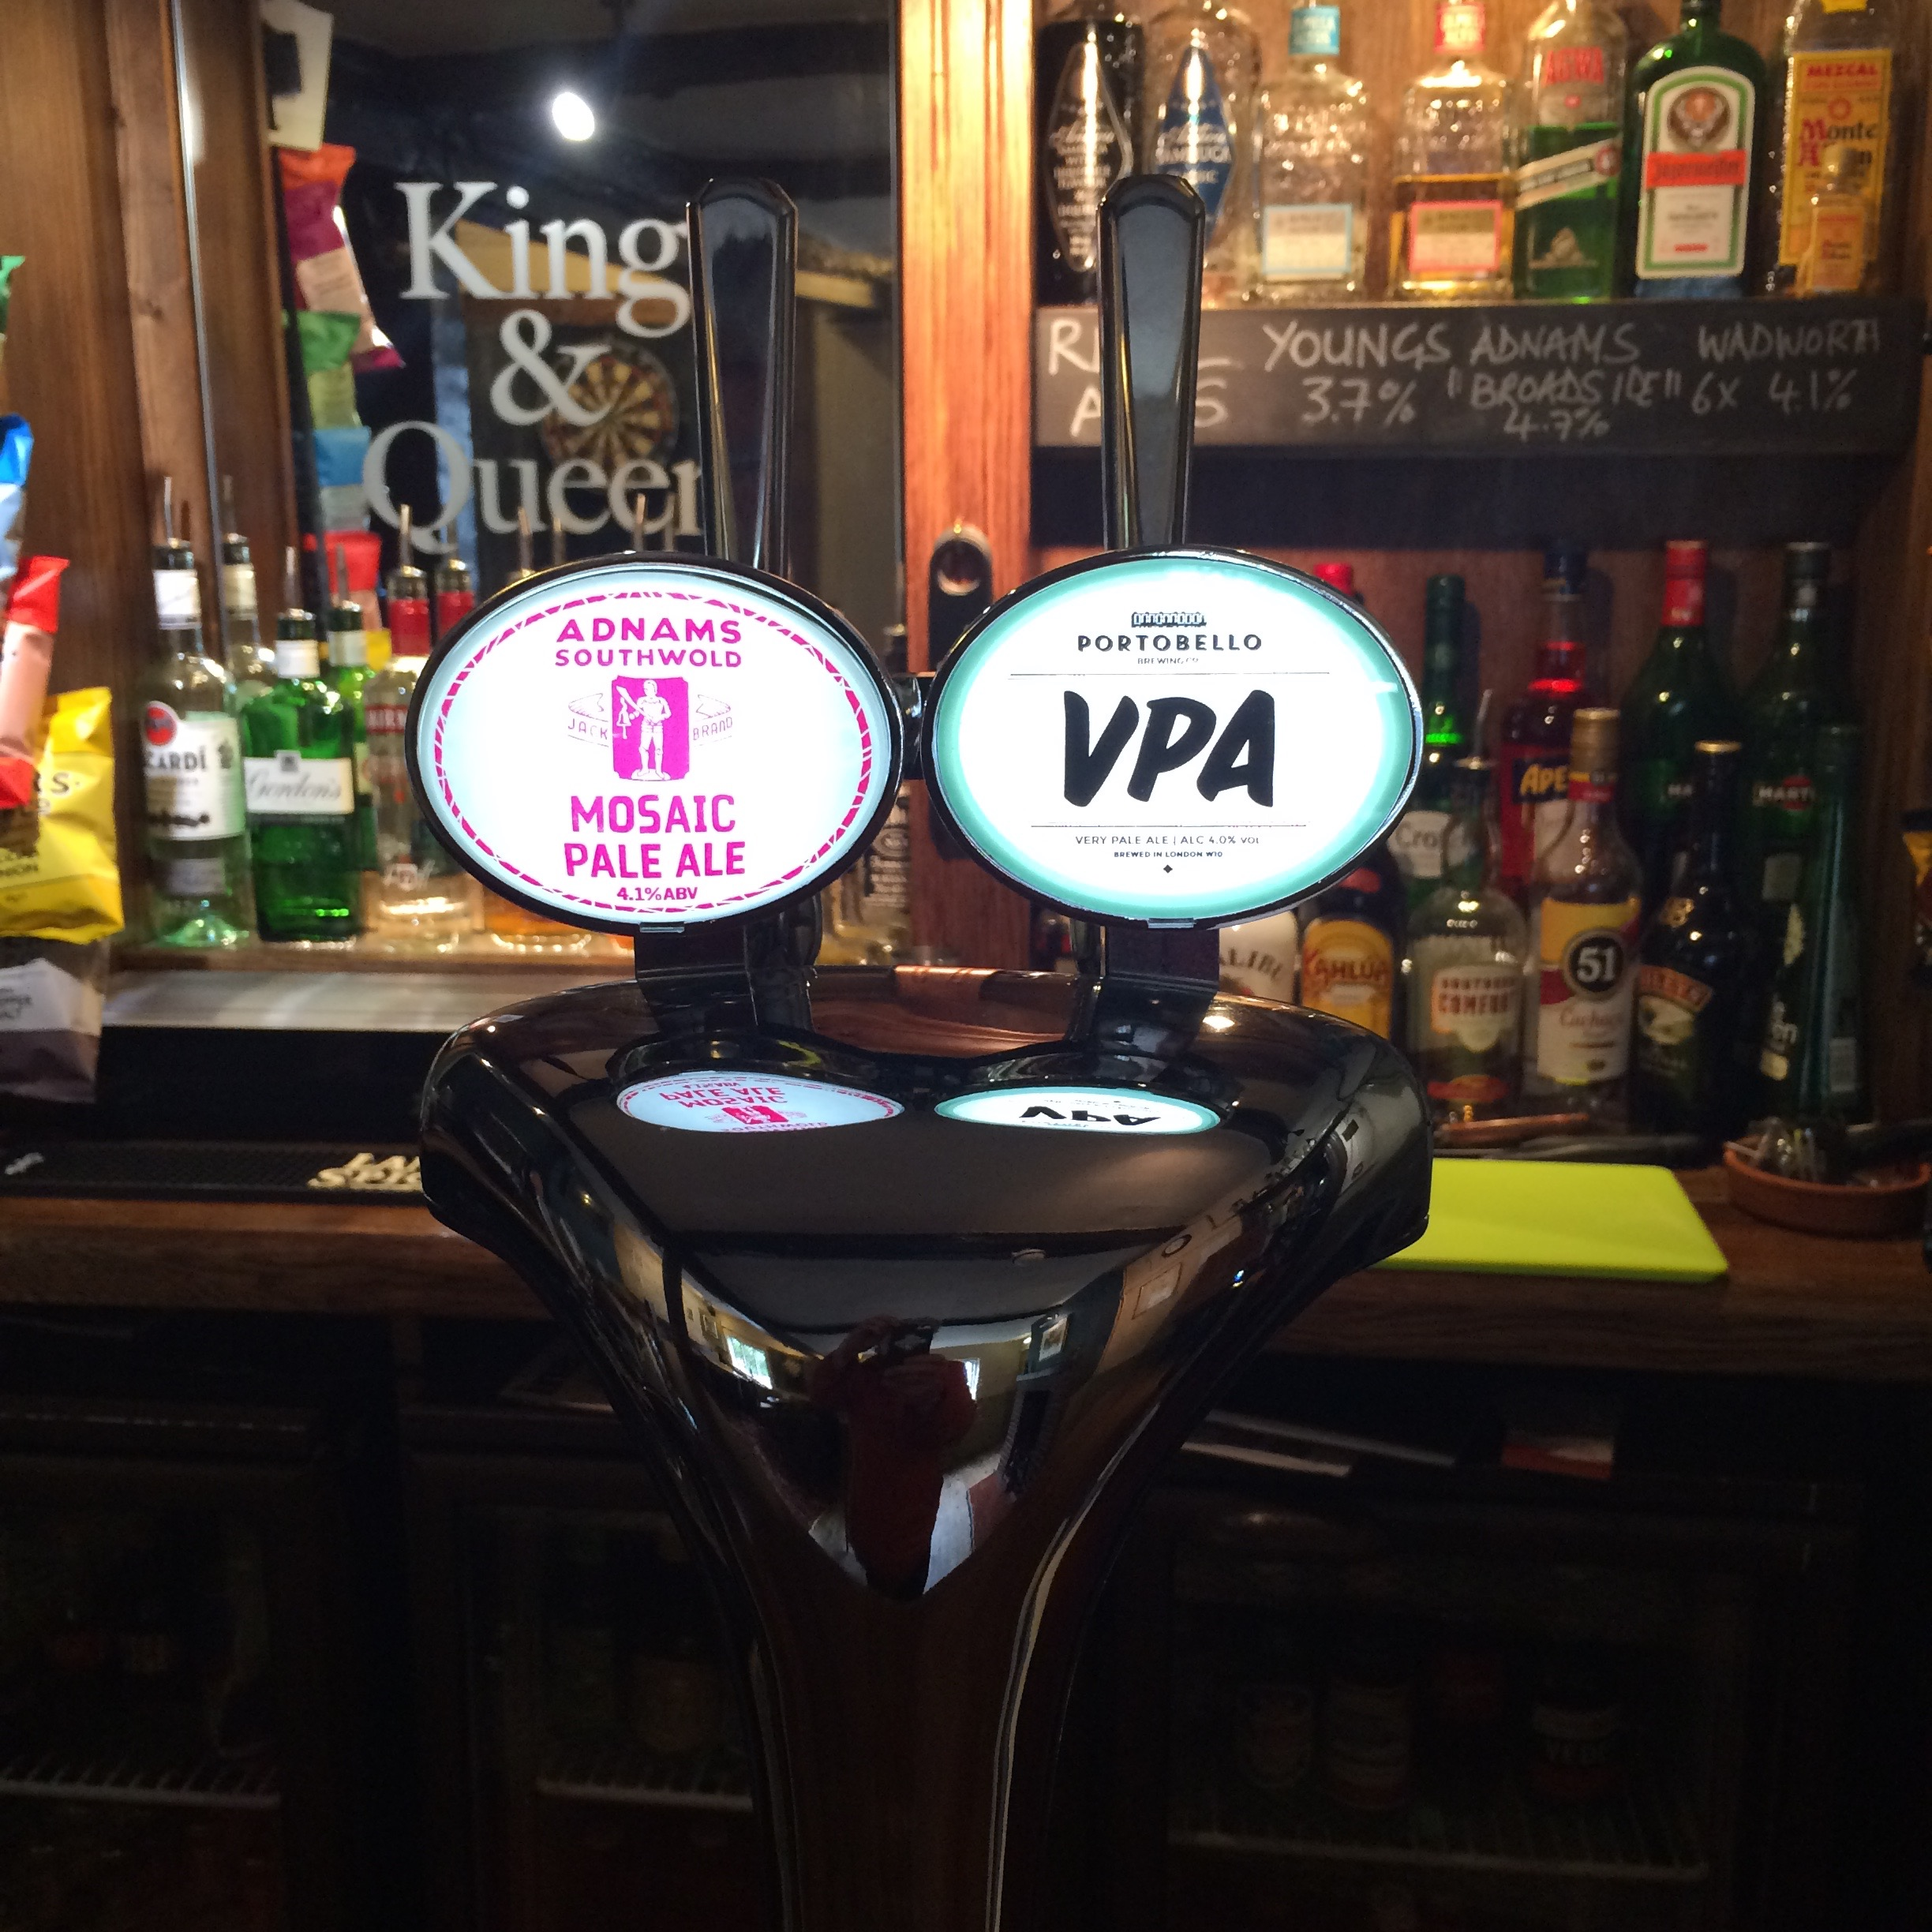 Two Rotational Craft Beers, currently Adnams Mosaic and Portobello VPA..